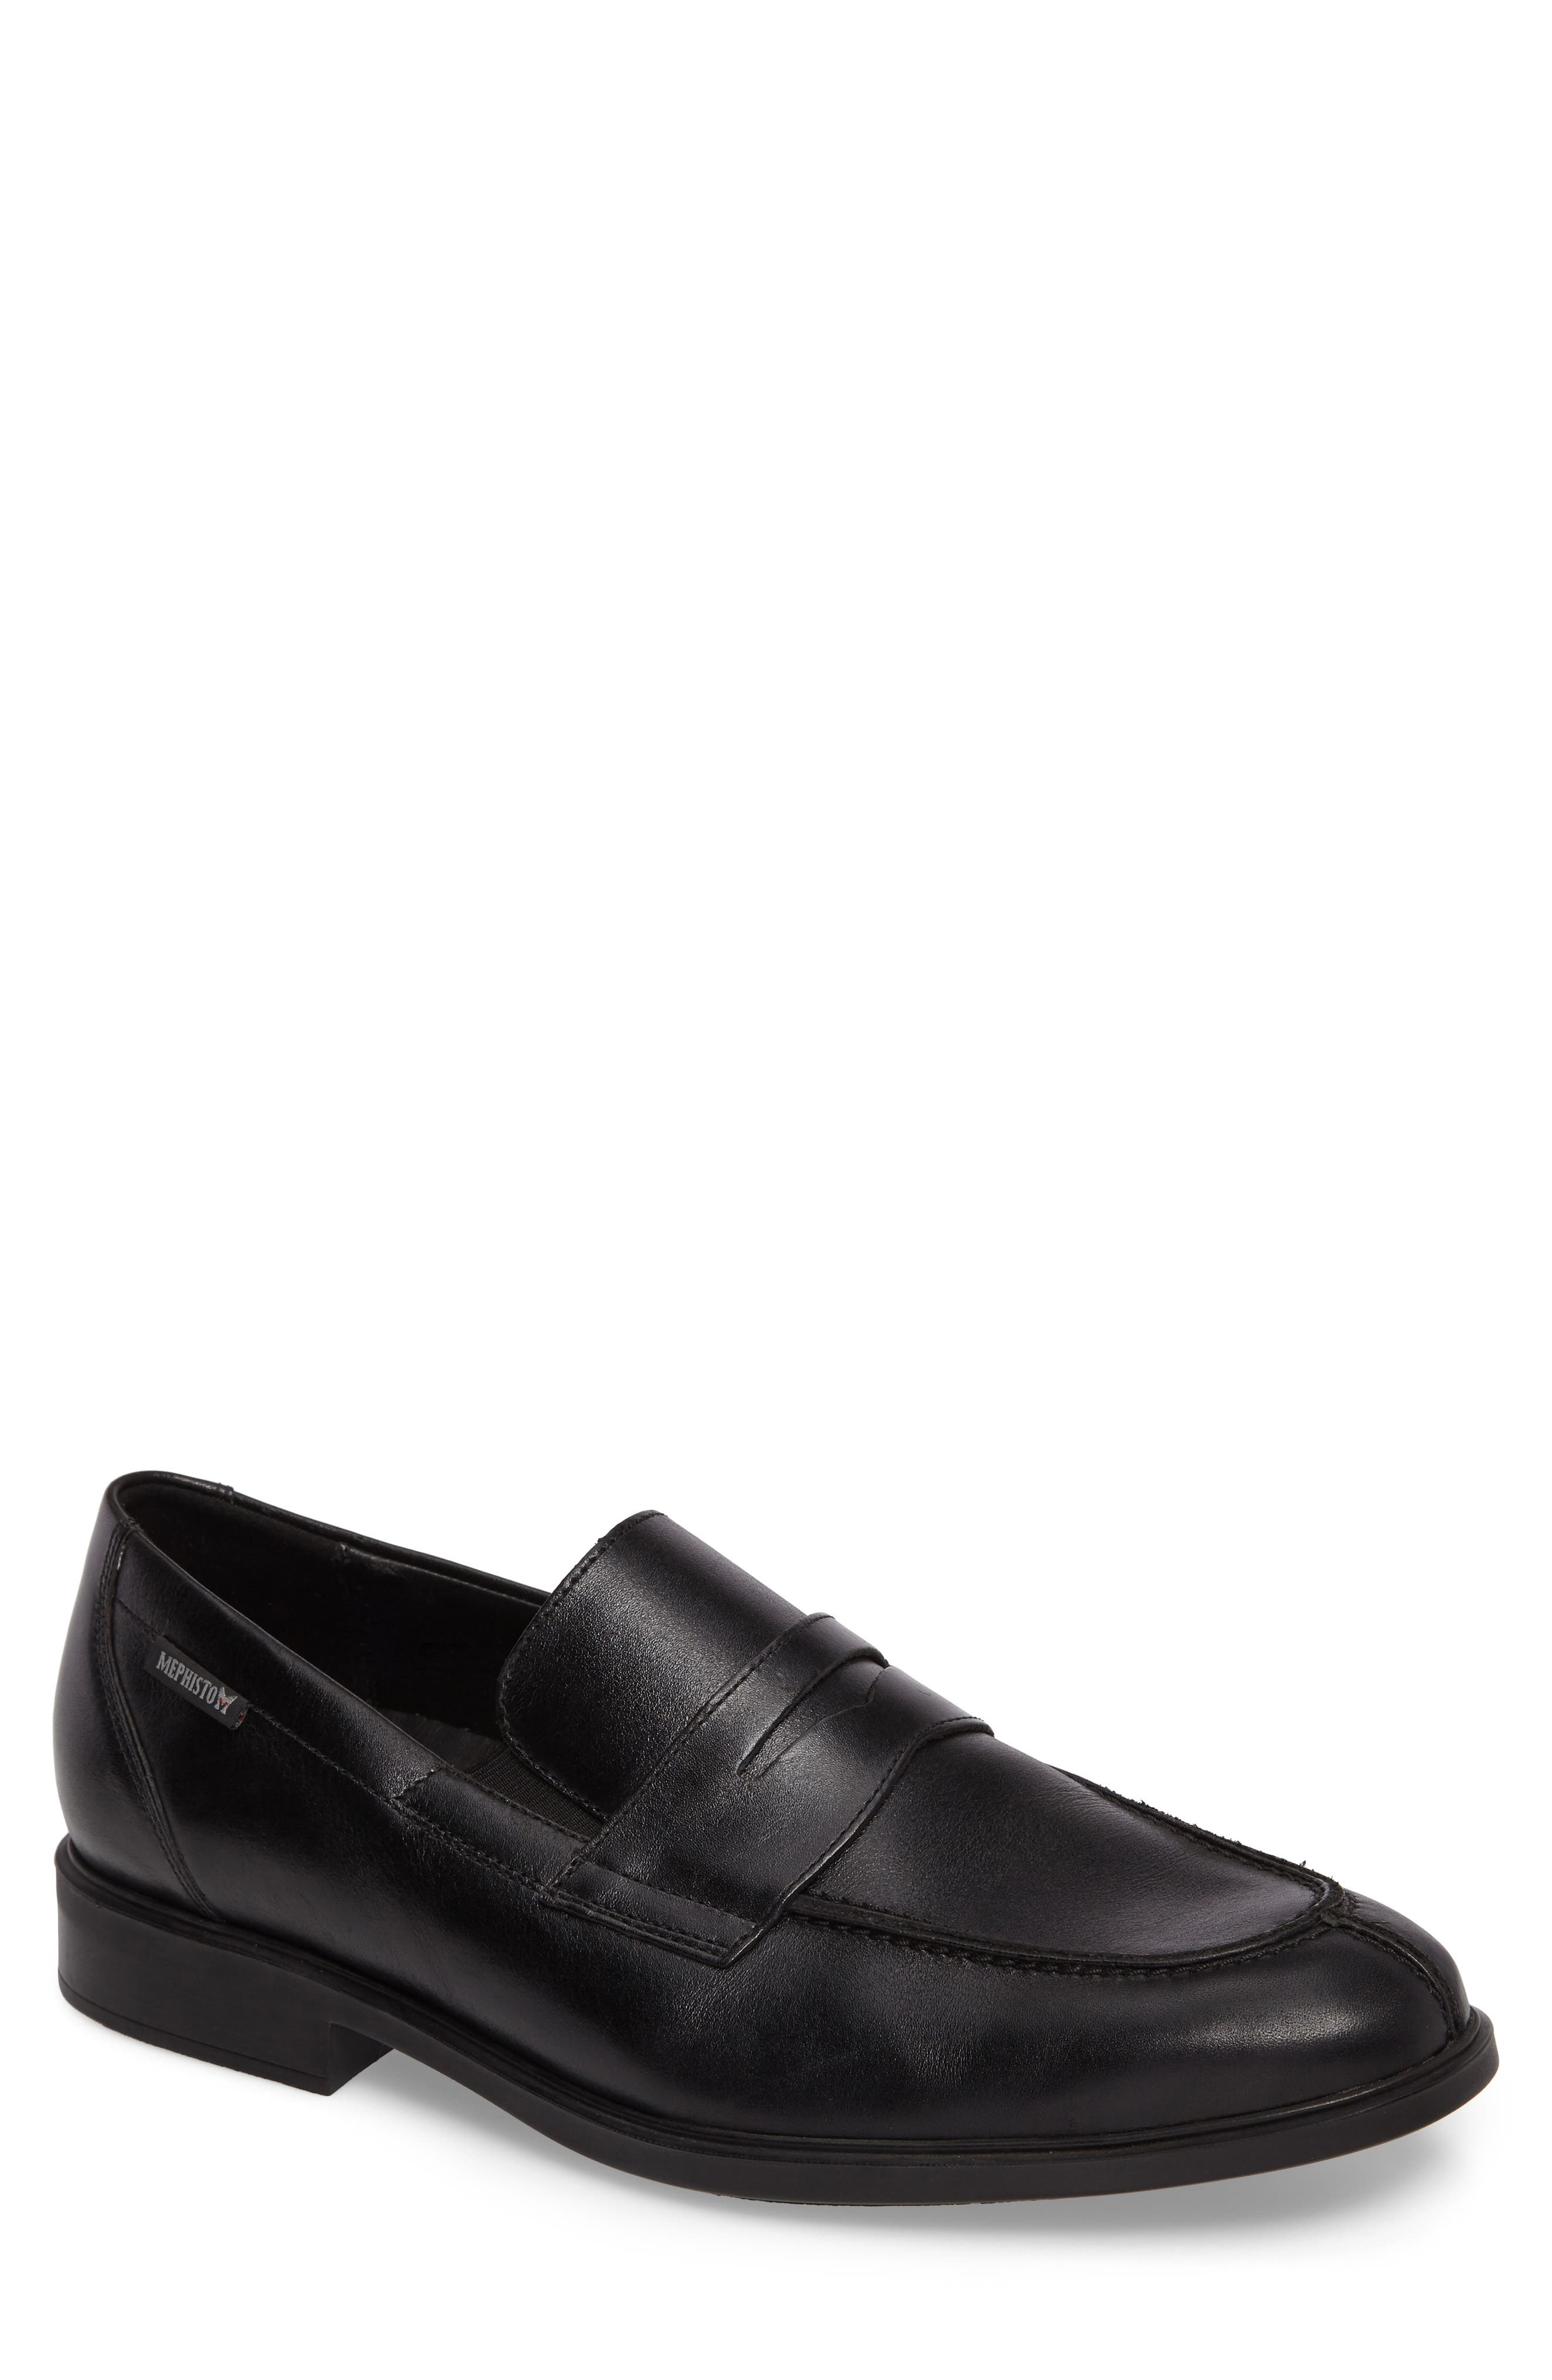 Fortino Loafer,                             Alternate thumbnail 2, color,                             001